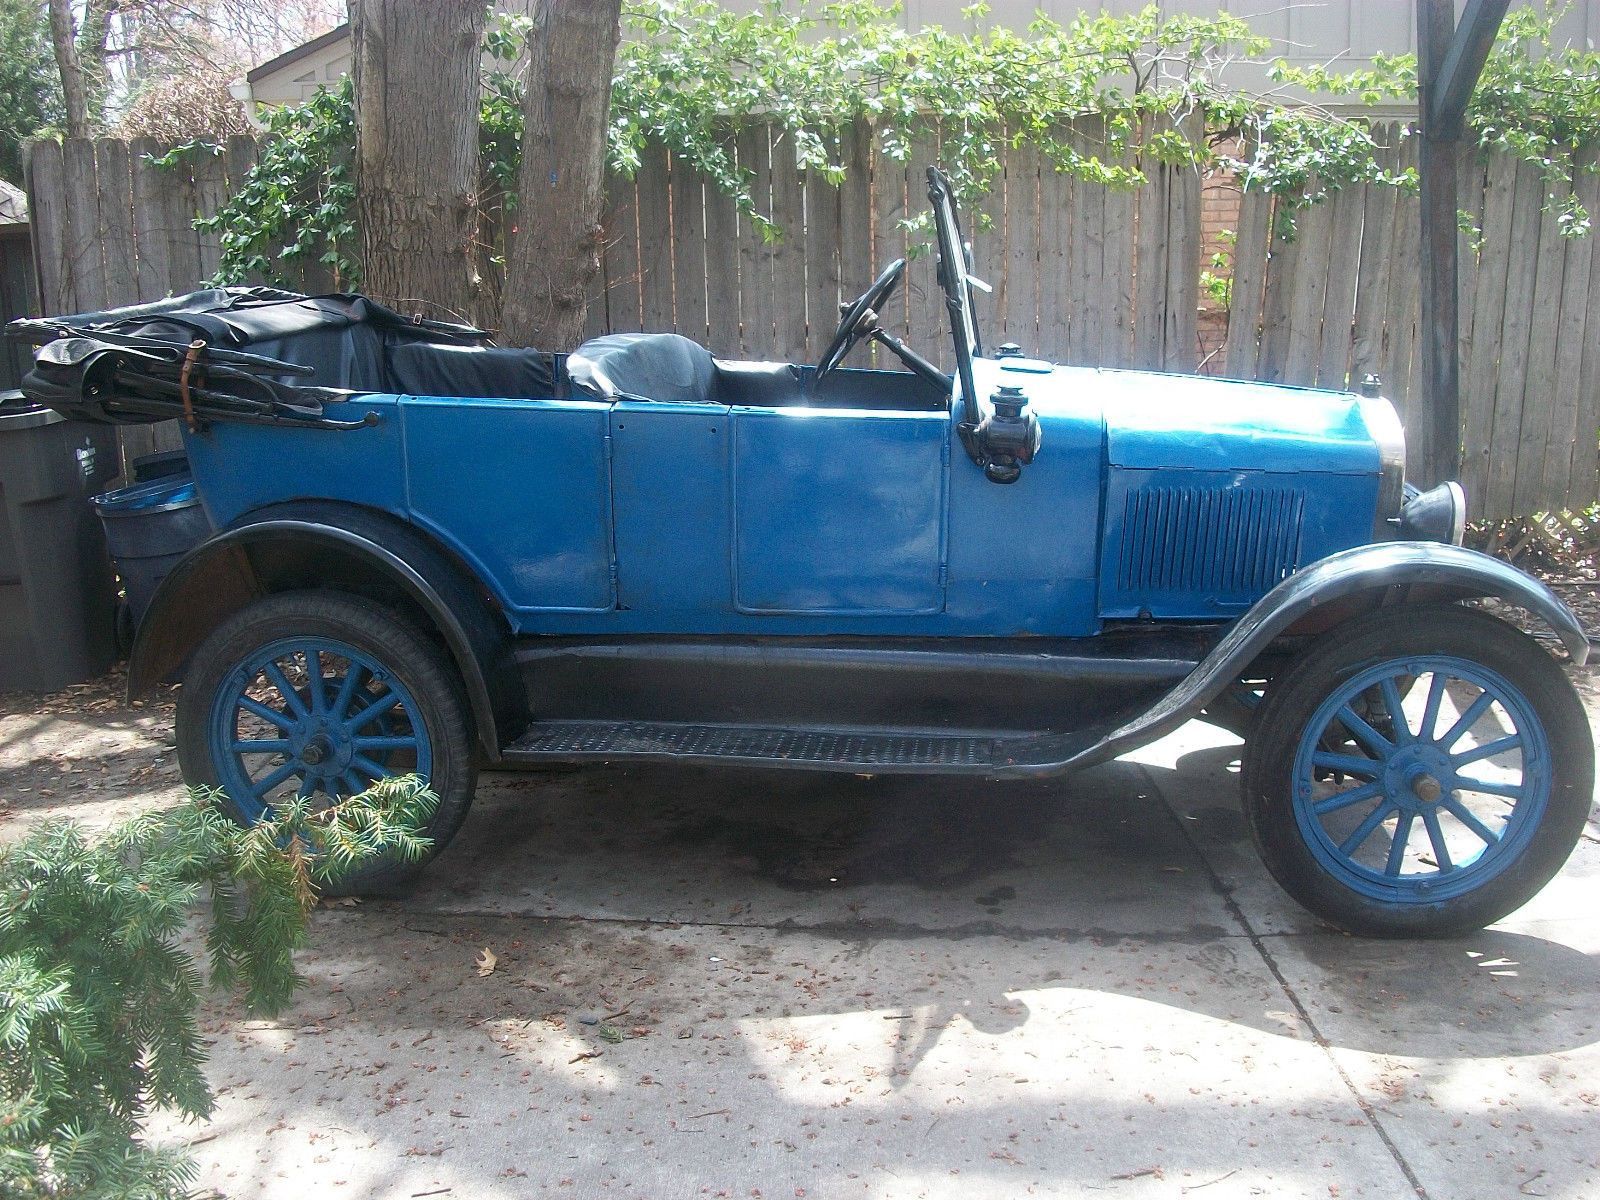 1926 Model T Ford Touring Cars Ford Model T Pinterest Ford